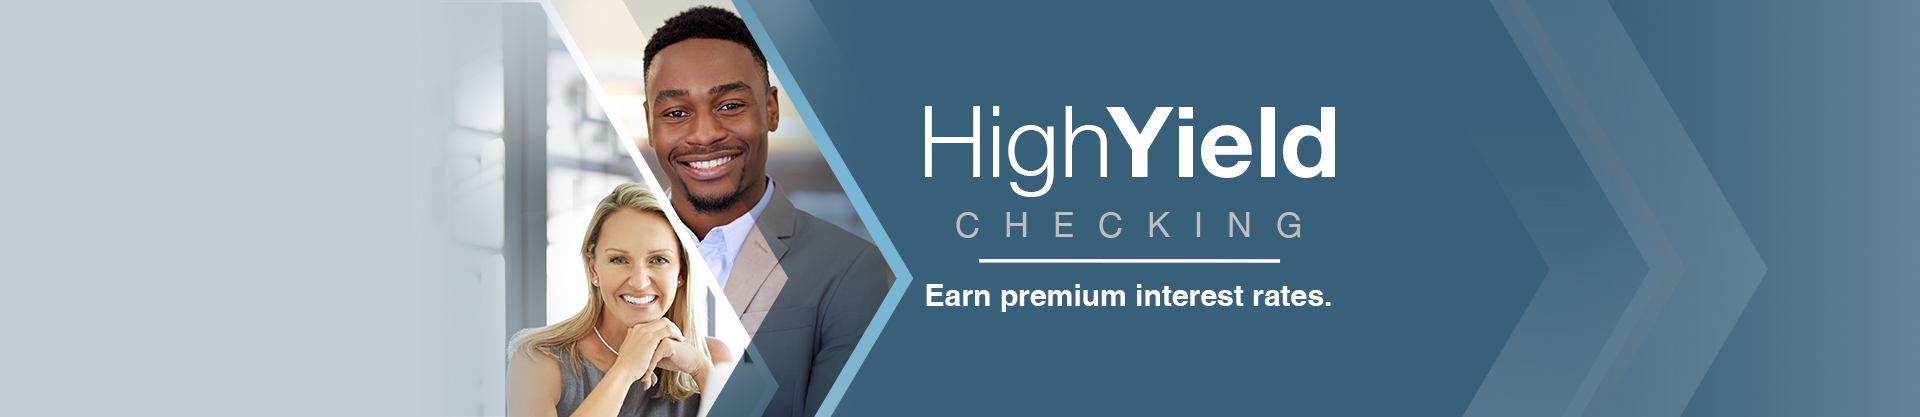 High Yield Checking. Earn premium interest rates.